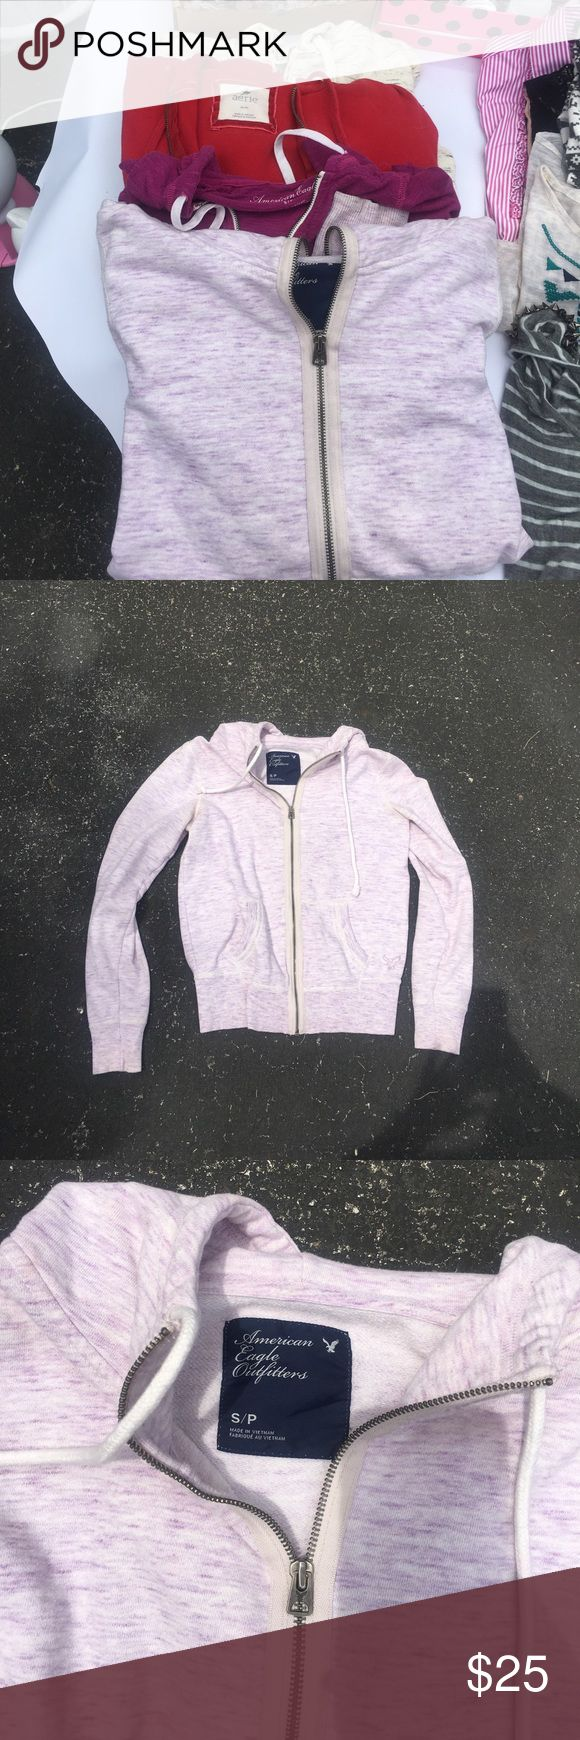 Lot of 4 zip up hoodies S ❤️ Lot of 4 American eagle aerie and f21 zip up jackets 2 American eagle are smalls aerie is a medium and F21 is a large all fit a size small American Eagle Outfitters Tops Sweatshirts & Hoodies